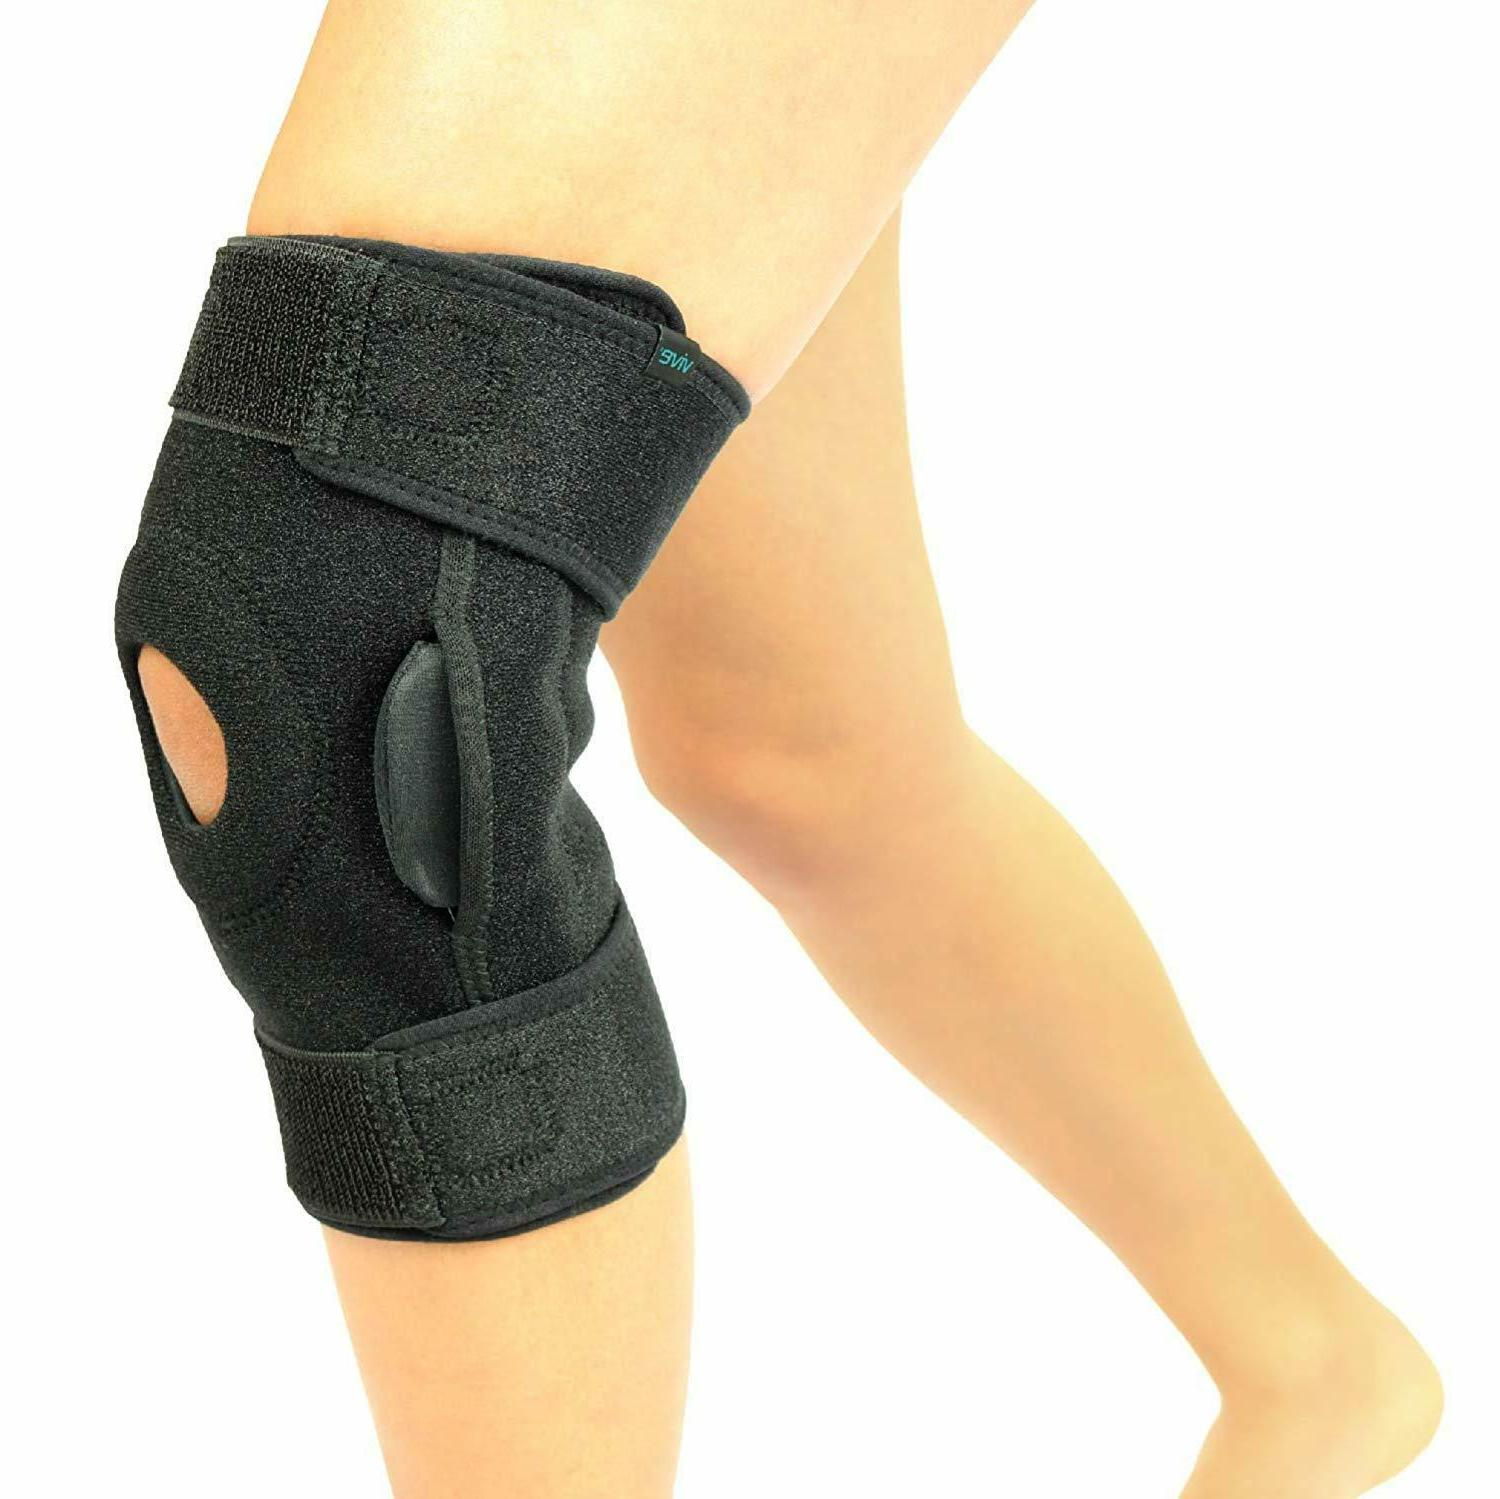 Vive Hinged Knee - Open Patella Support Injuries - for Running